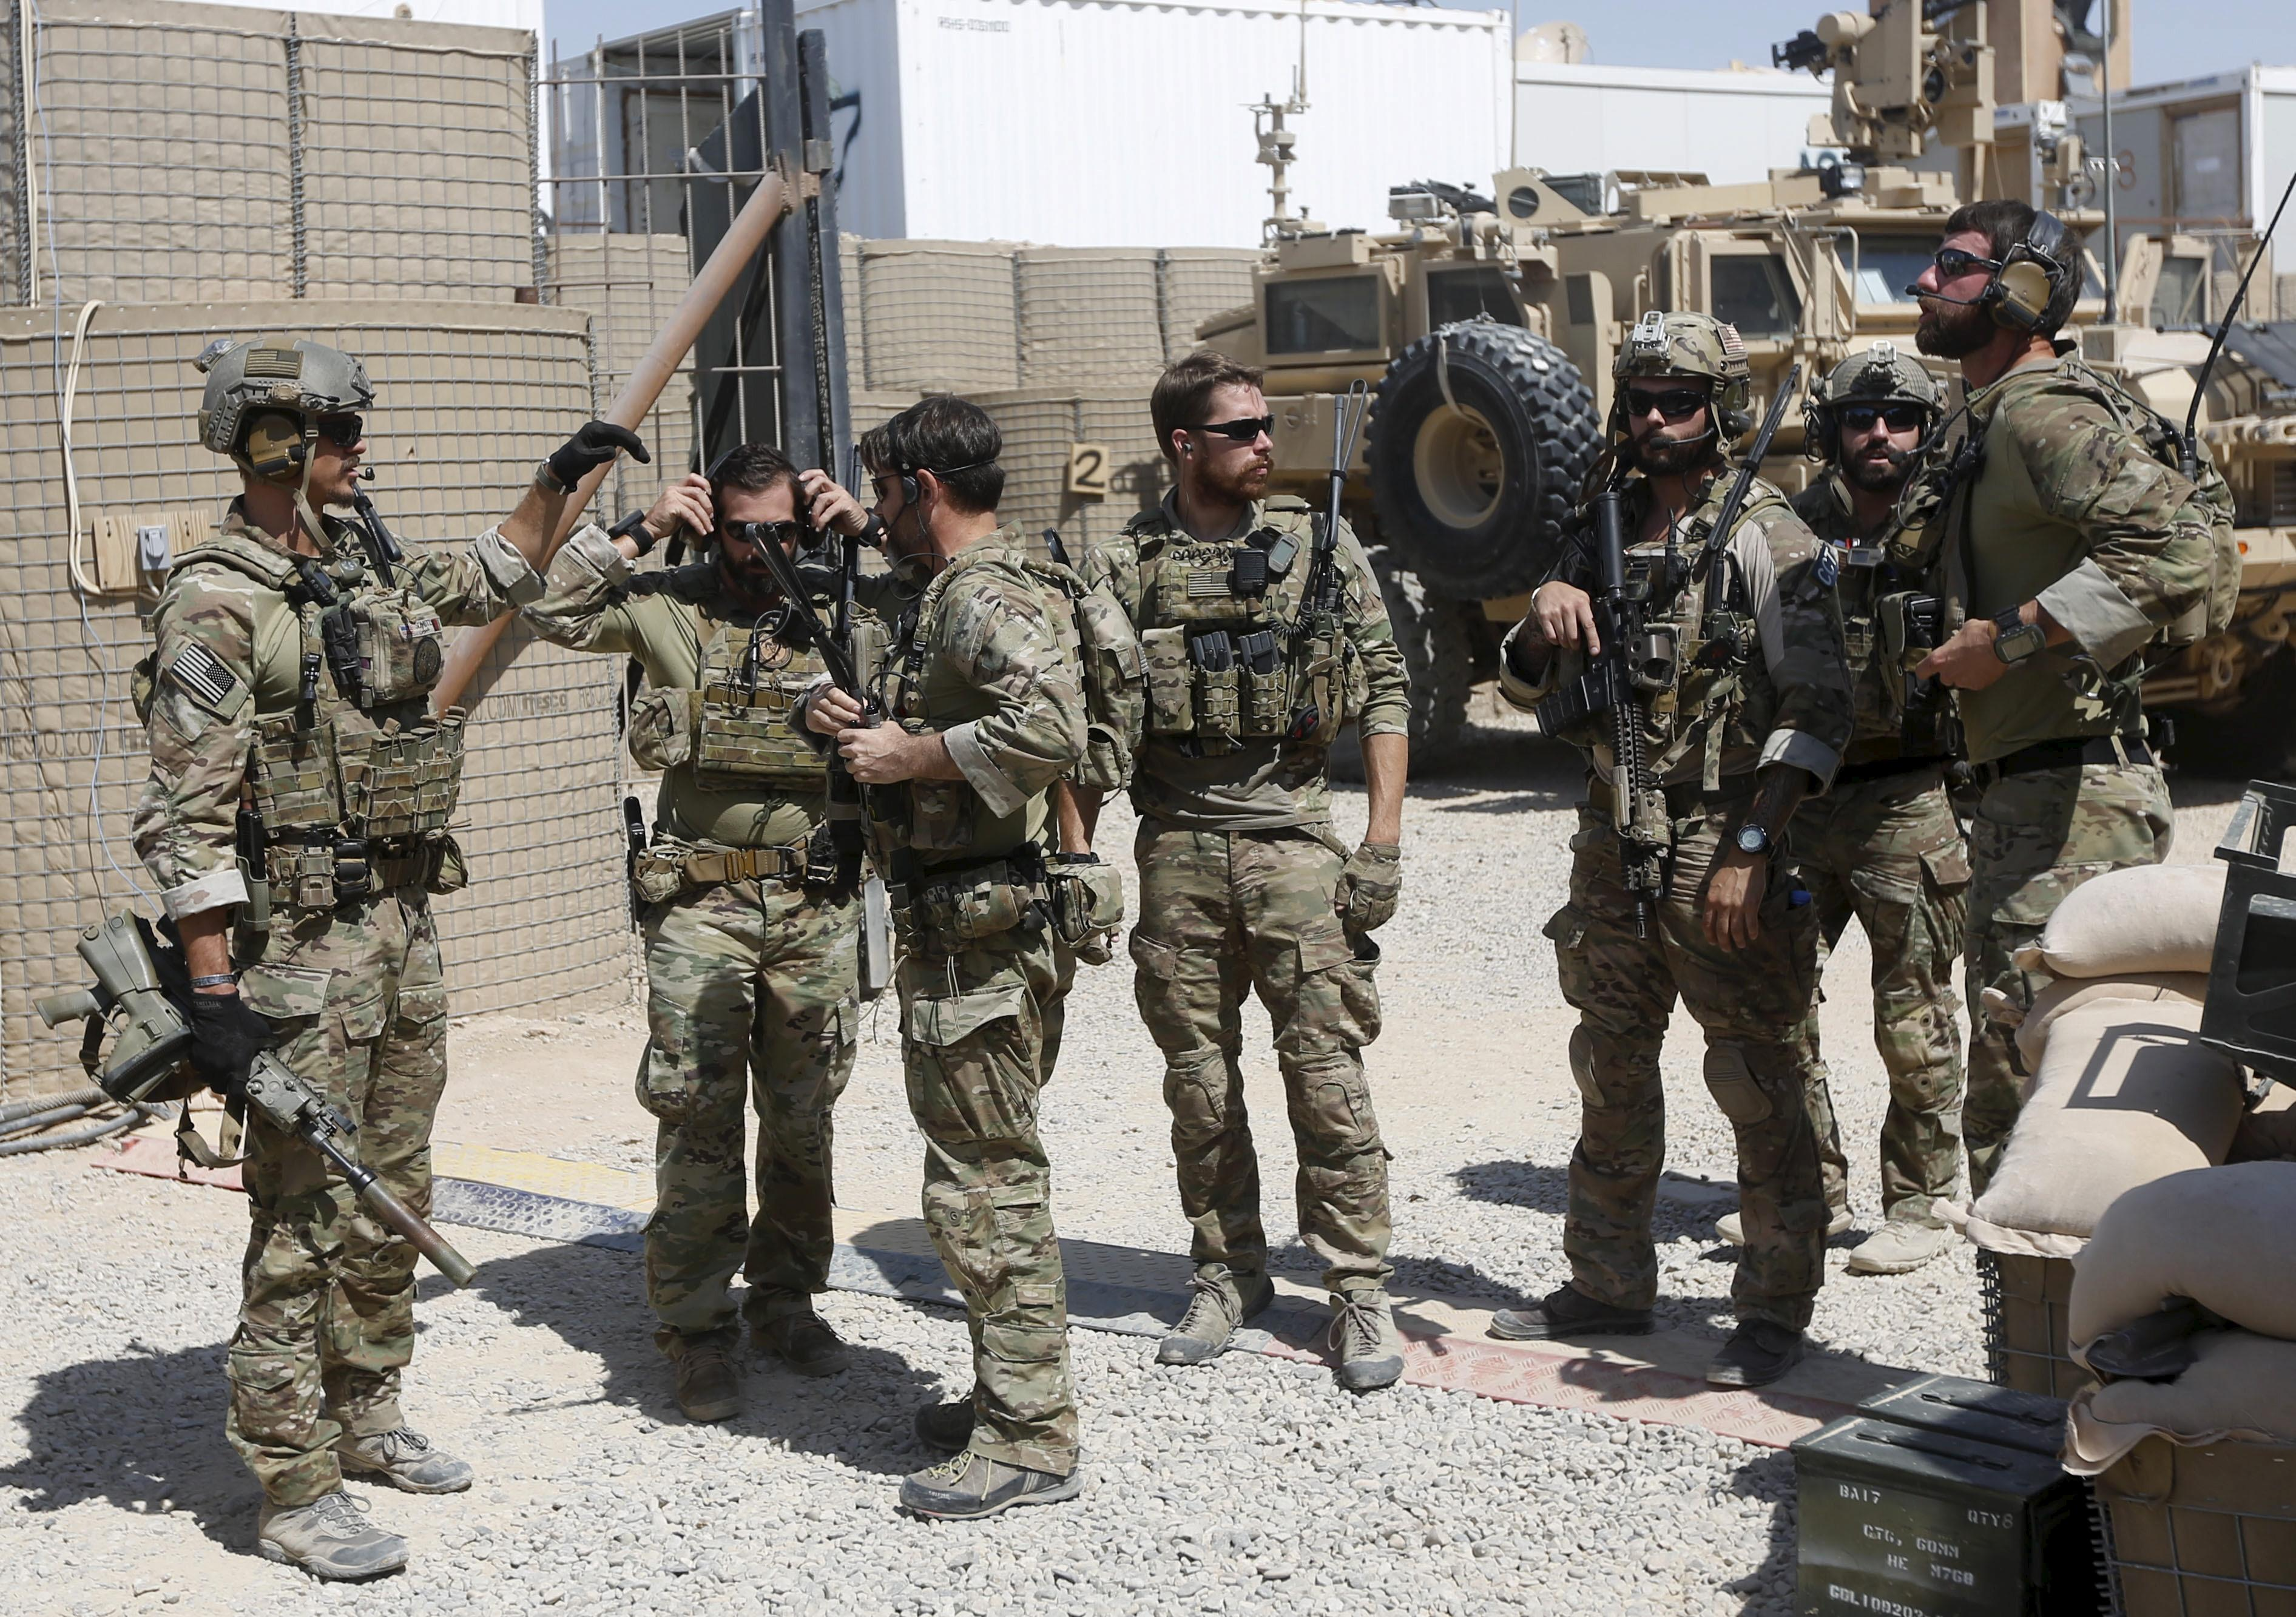 U.S. Special Forces troops preparing to leave a base in Afghanistan.